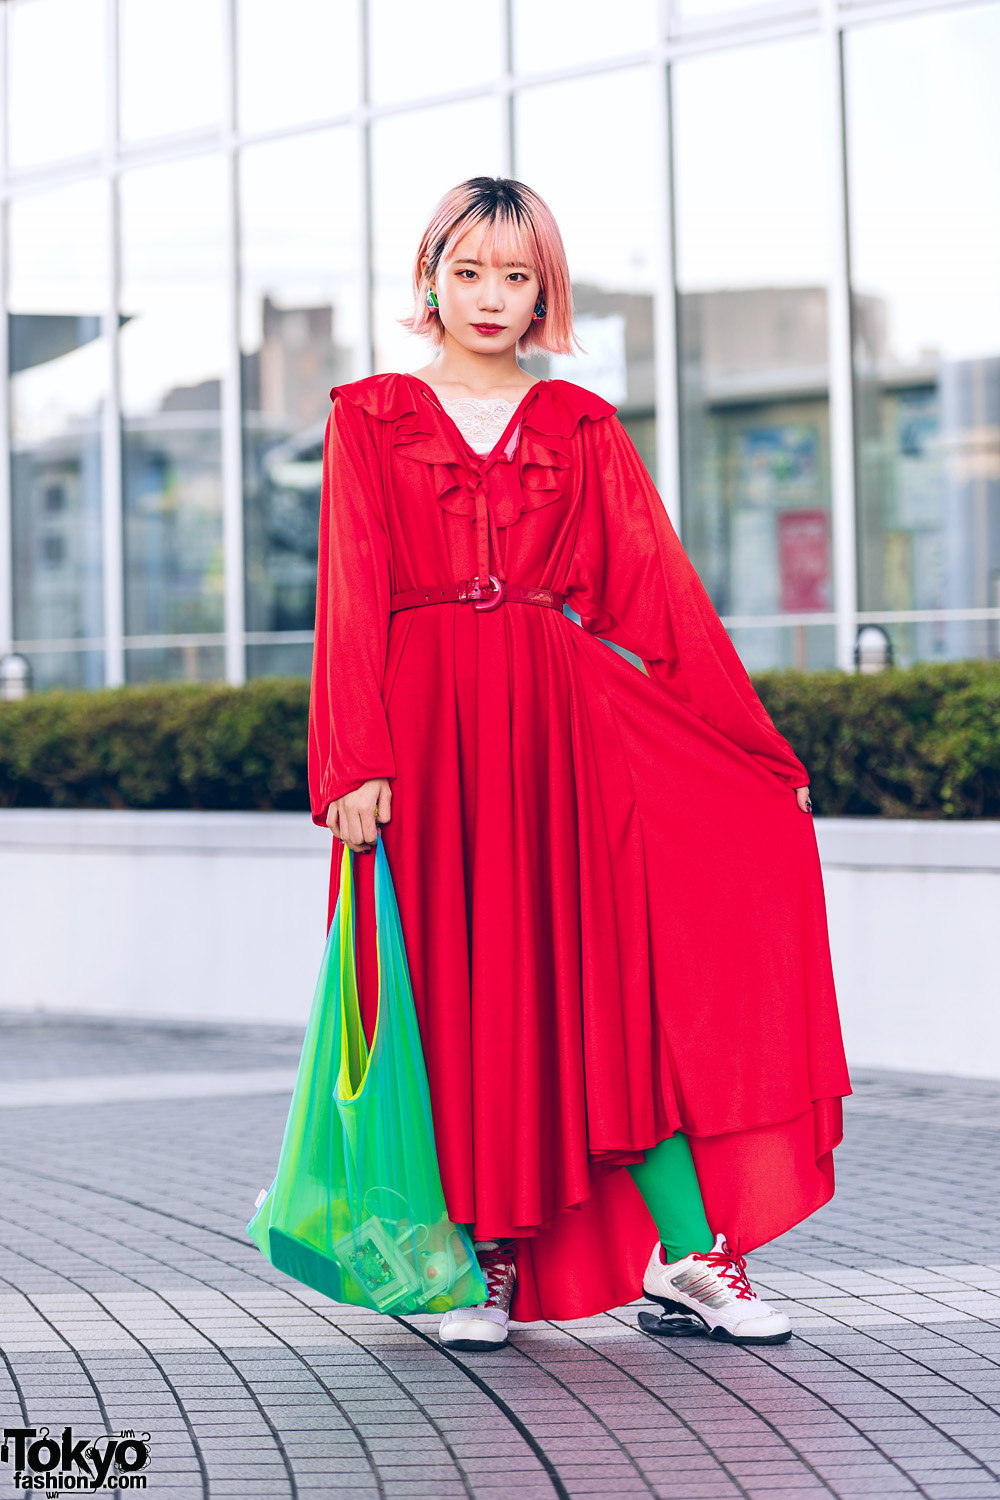 Bunka Fashion College Colorful Vintage Street Style w/ Red Dress, Spring Heel Sneakers & Shinkirou Bag